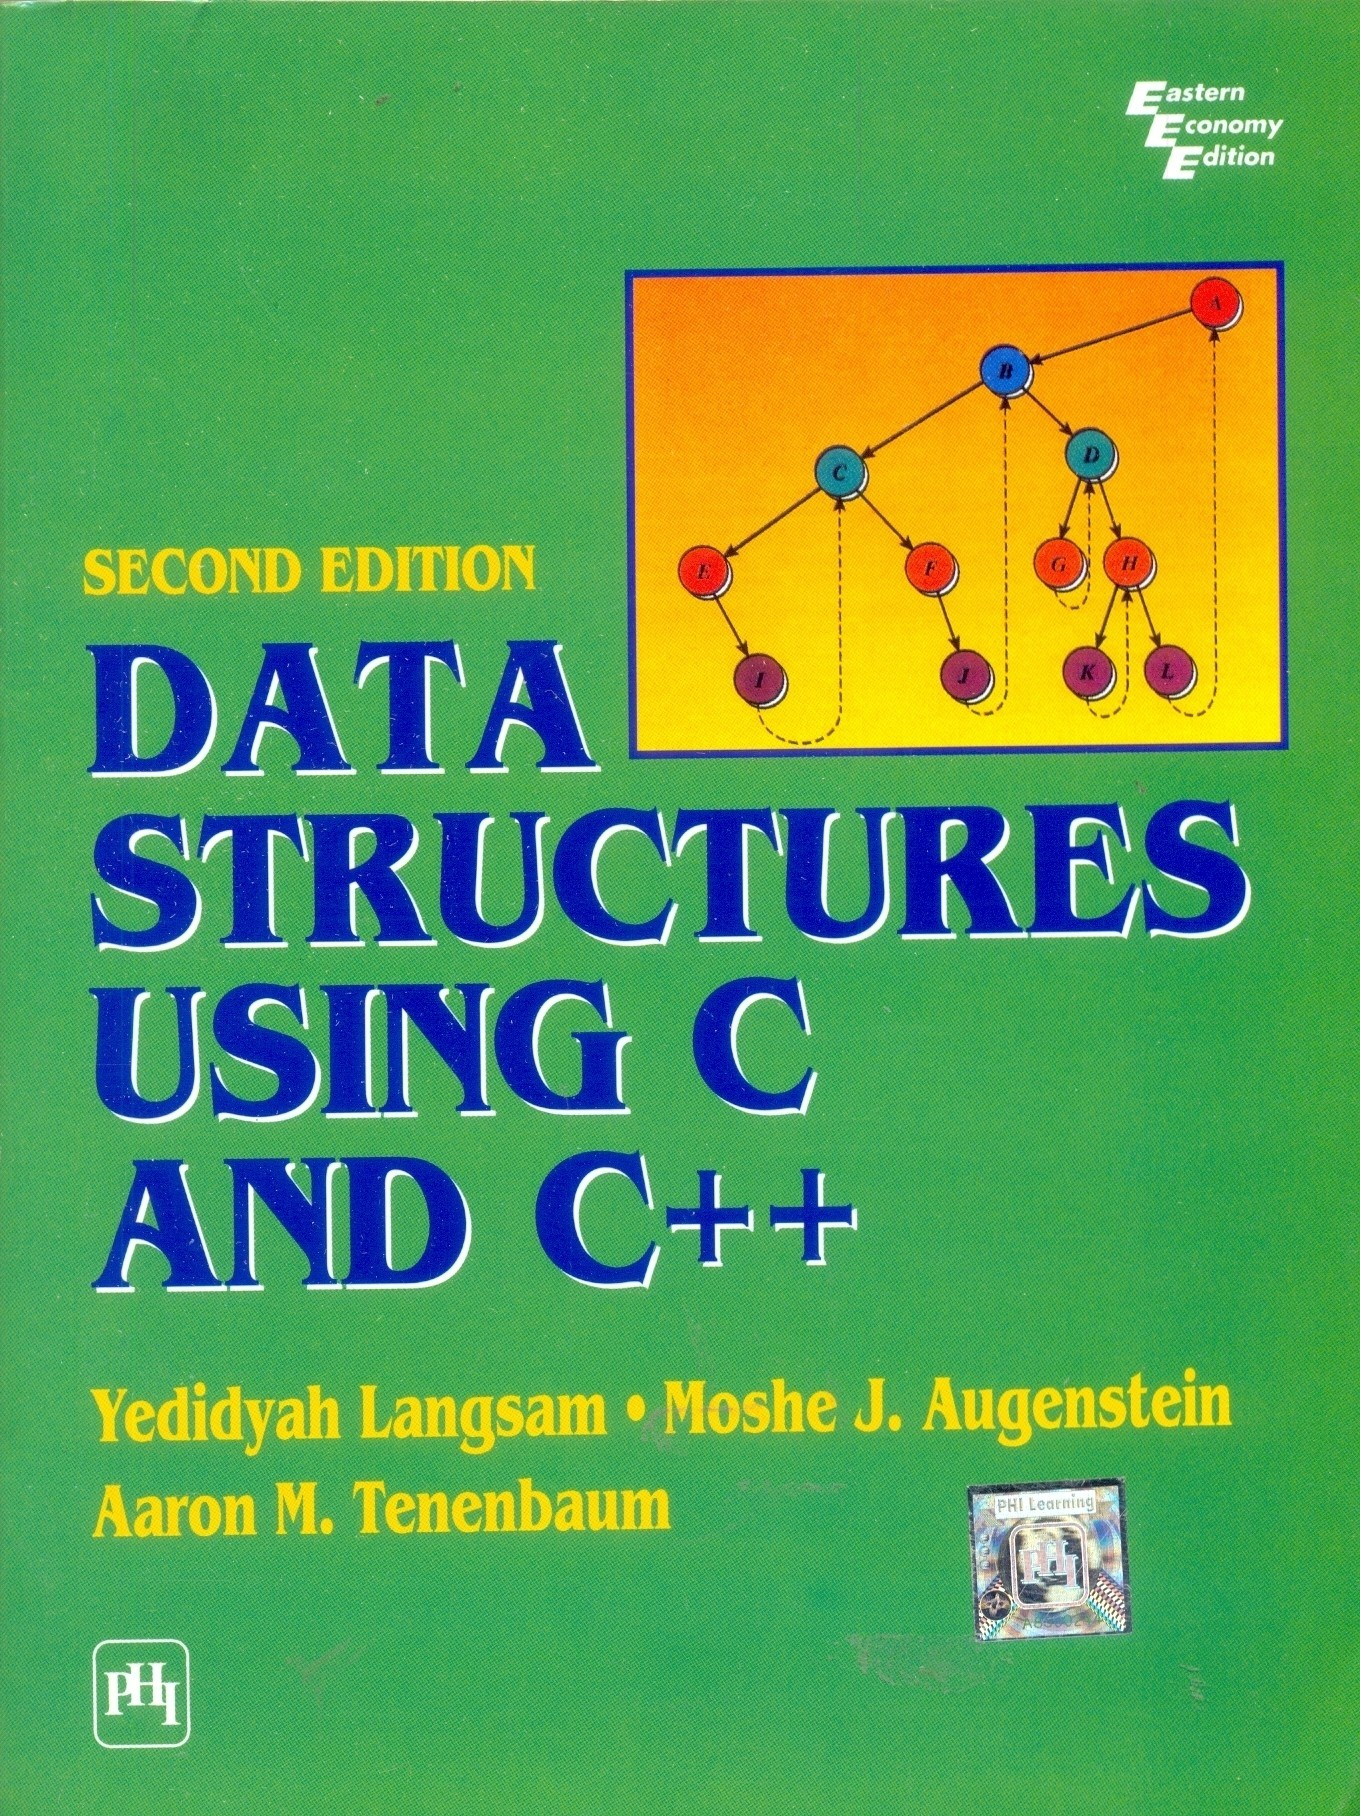 Data structures using c tanenbaum ebook free download.